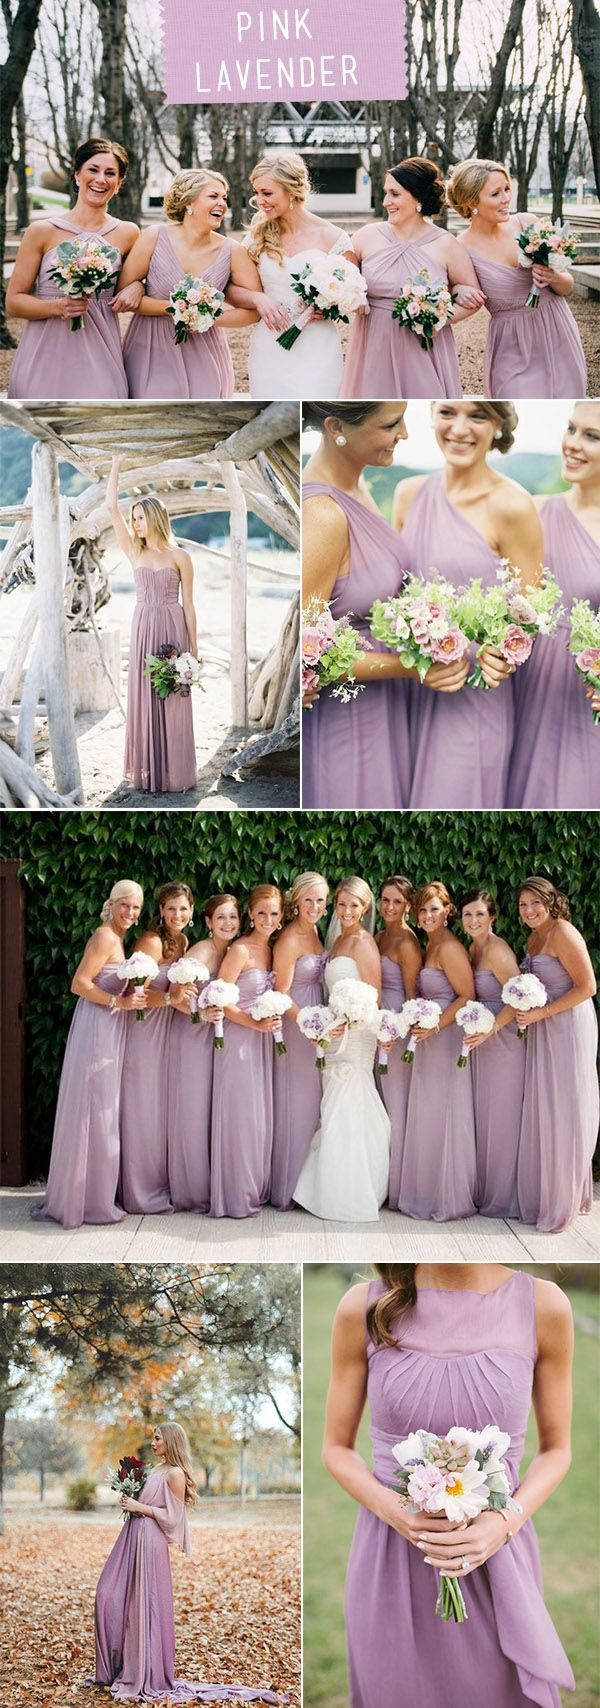 77 best bridesmaid dresses images on pinterest bridal gowns pink lavender bridesmaid dresses for 2018 wedding trends ombrellifo Gallery